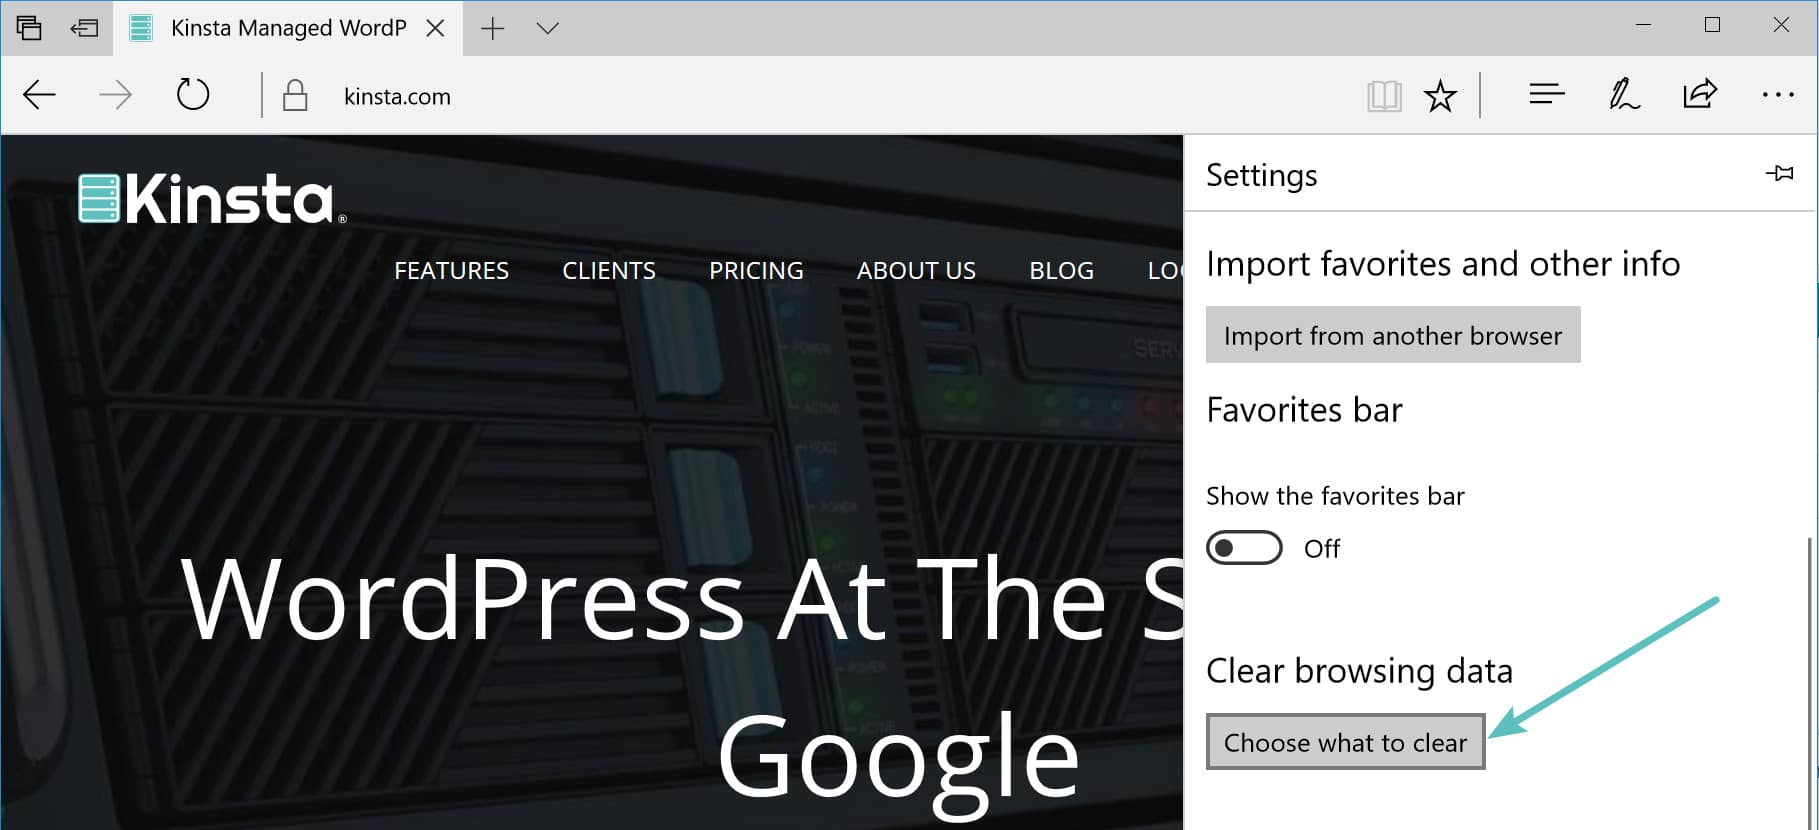 Choose what to clear in Microsoft Edge